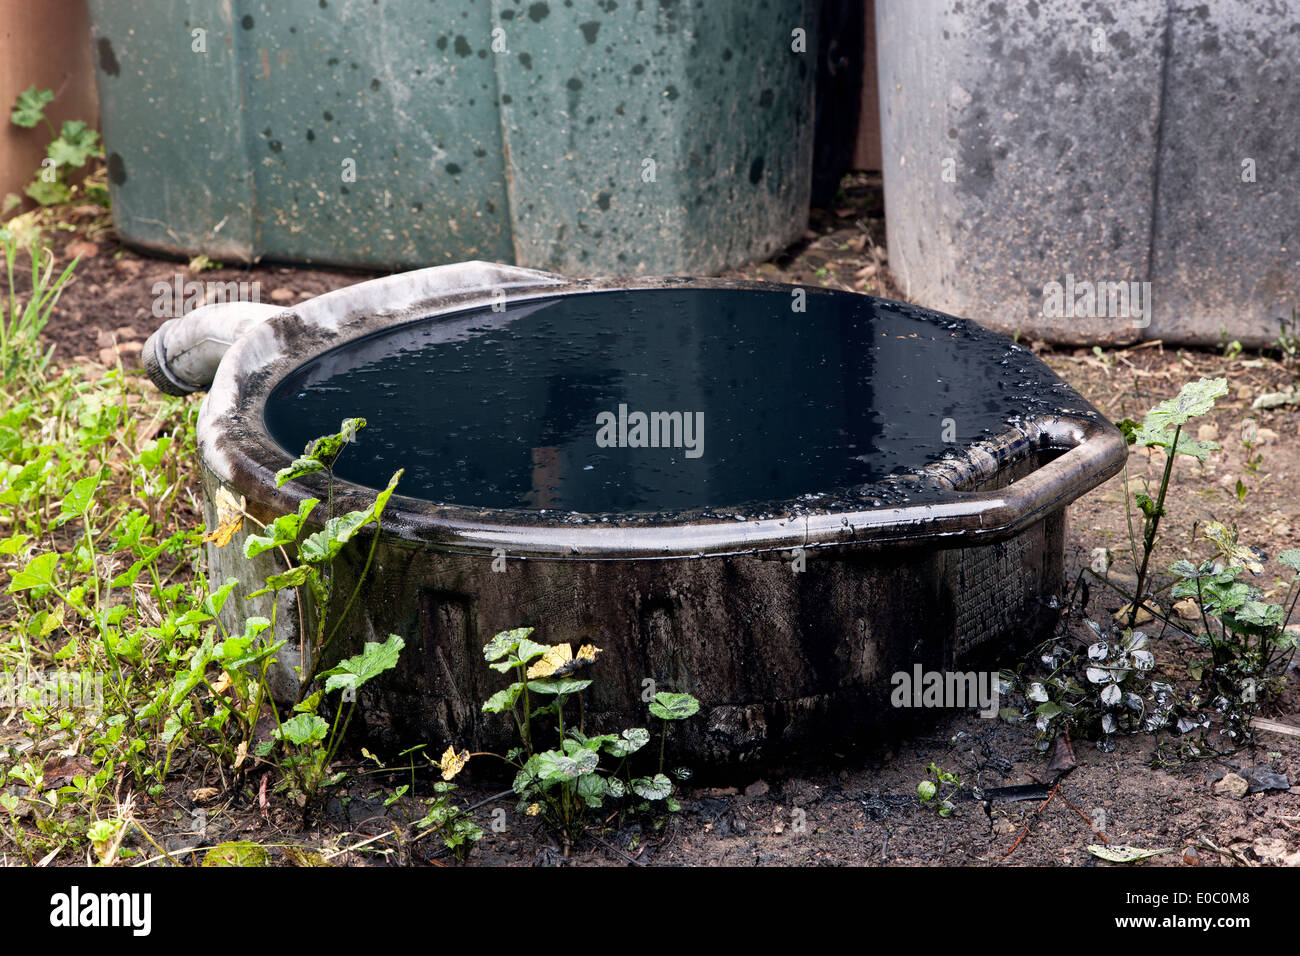 Pool Ablassen Und Reinigen Dirty Stockfotos And Dirty Bilder Alamy